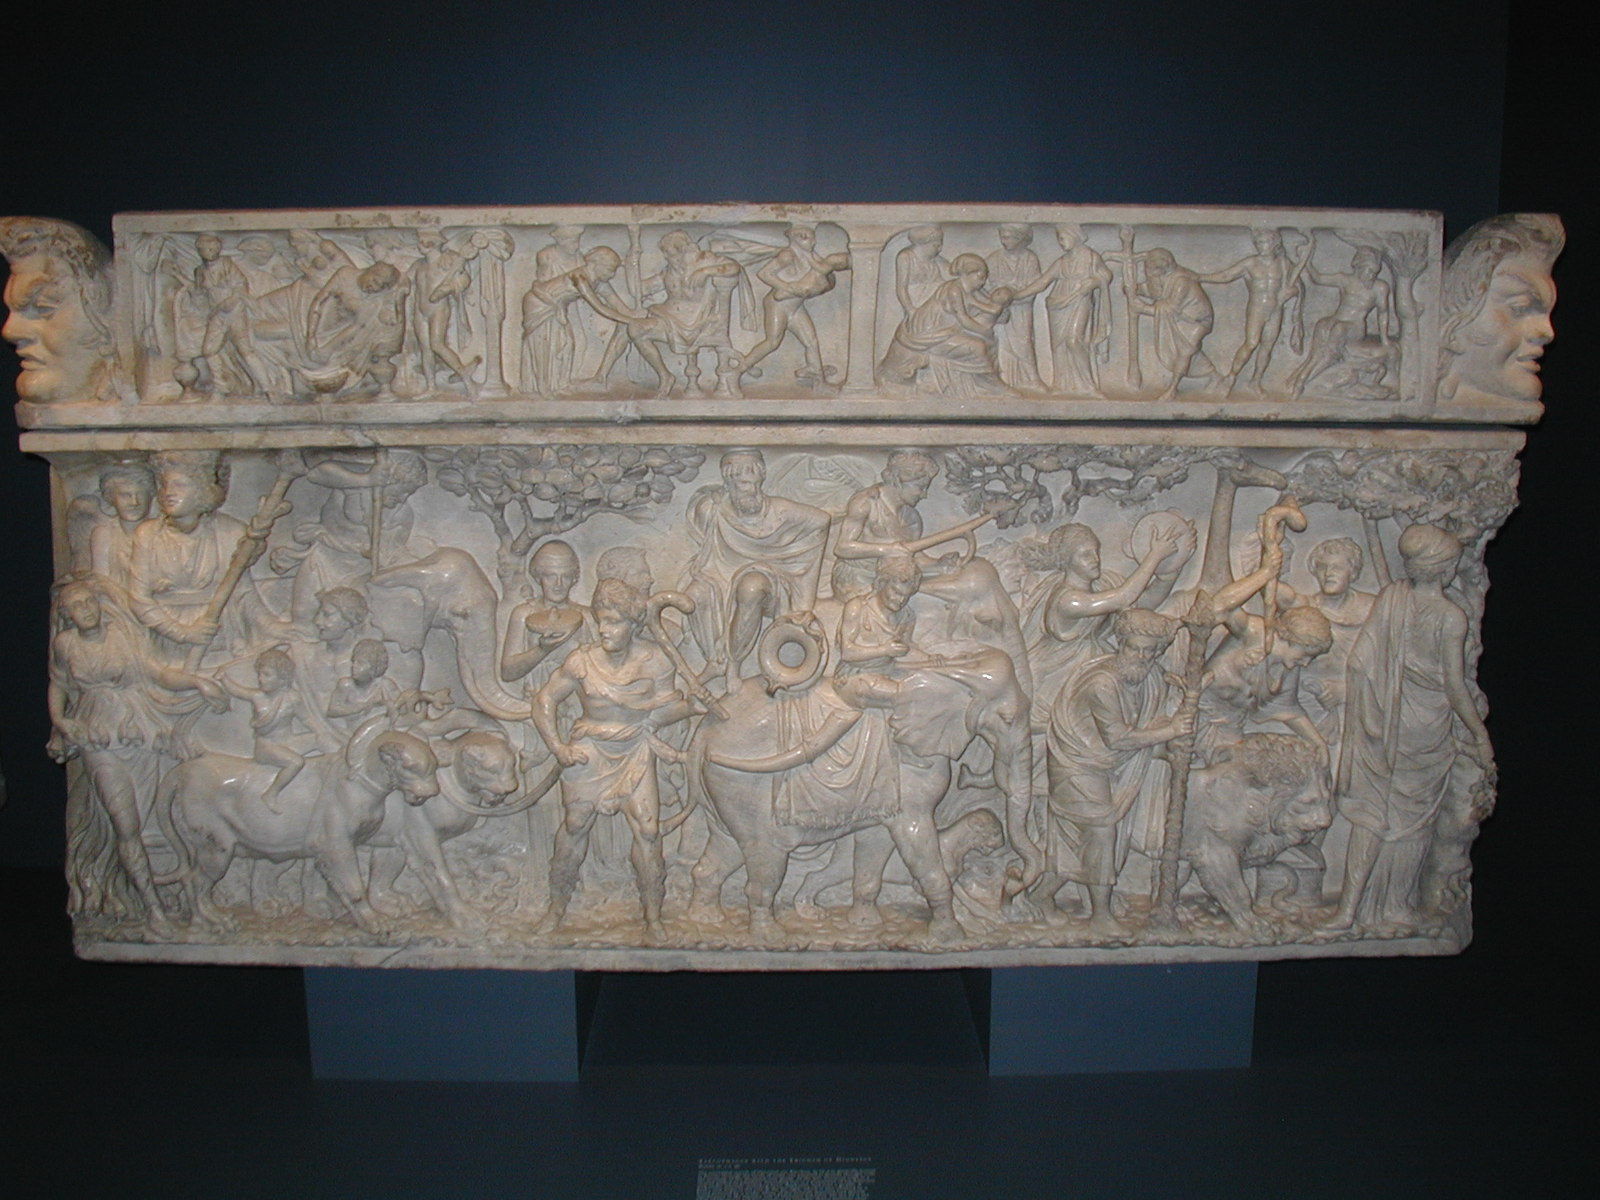 analysis of sarcophagus with the triumph